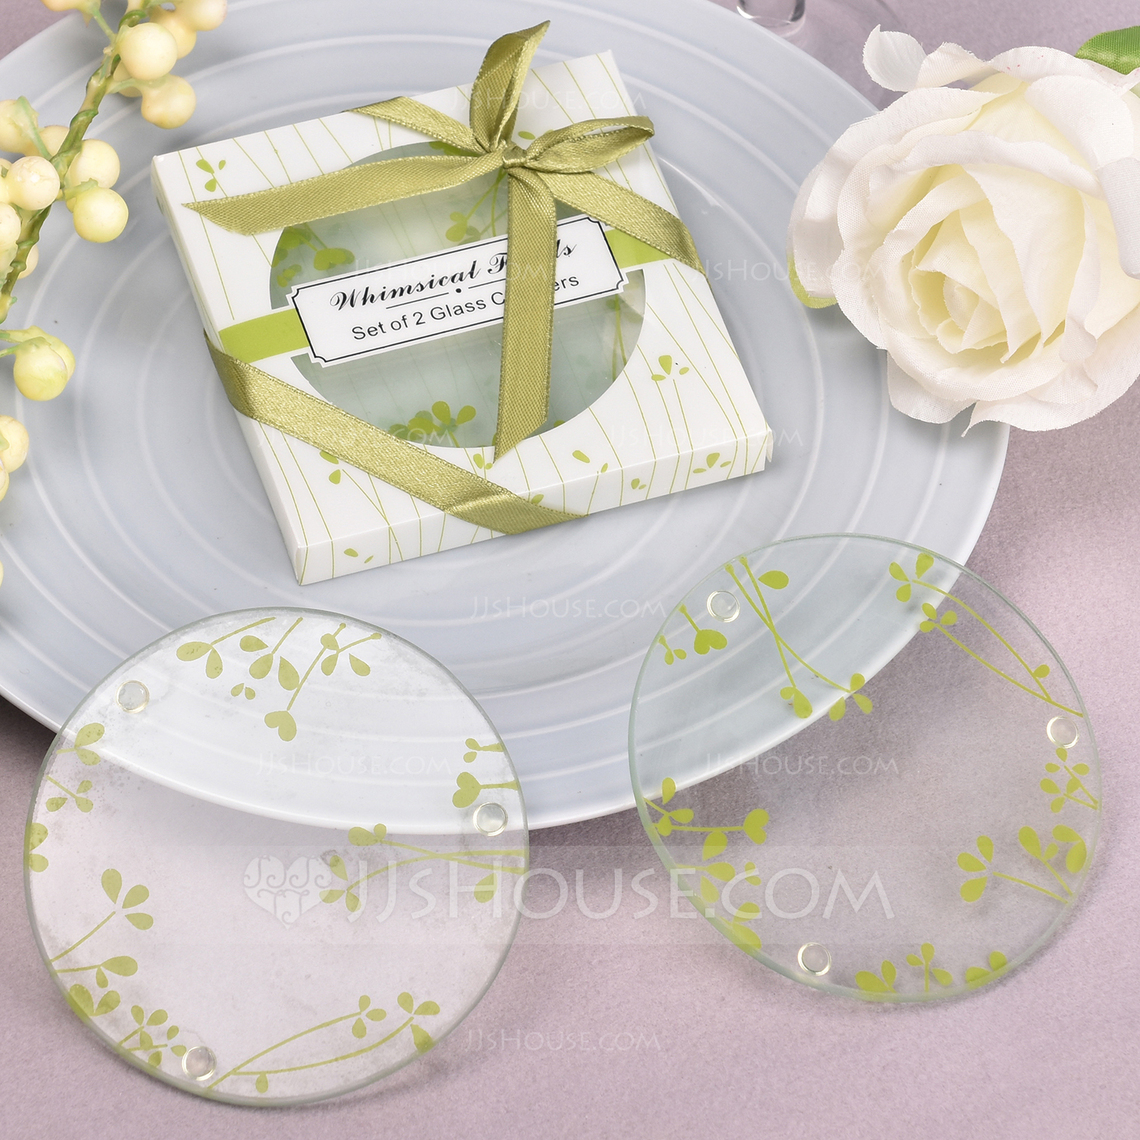 Round Glass Coaster (Set of 2) (051124516) - Practical Favors - JJsHouse